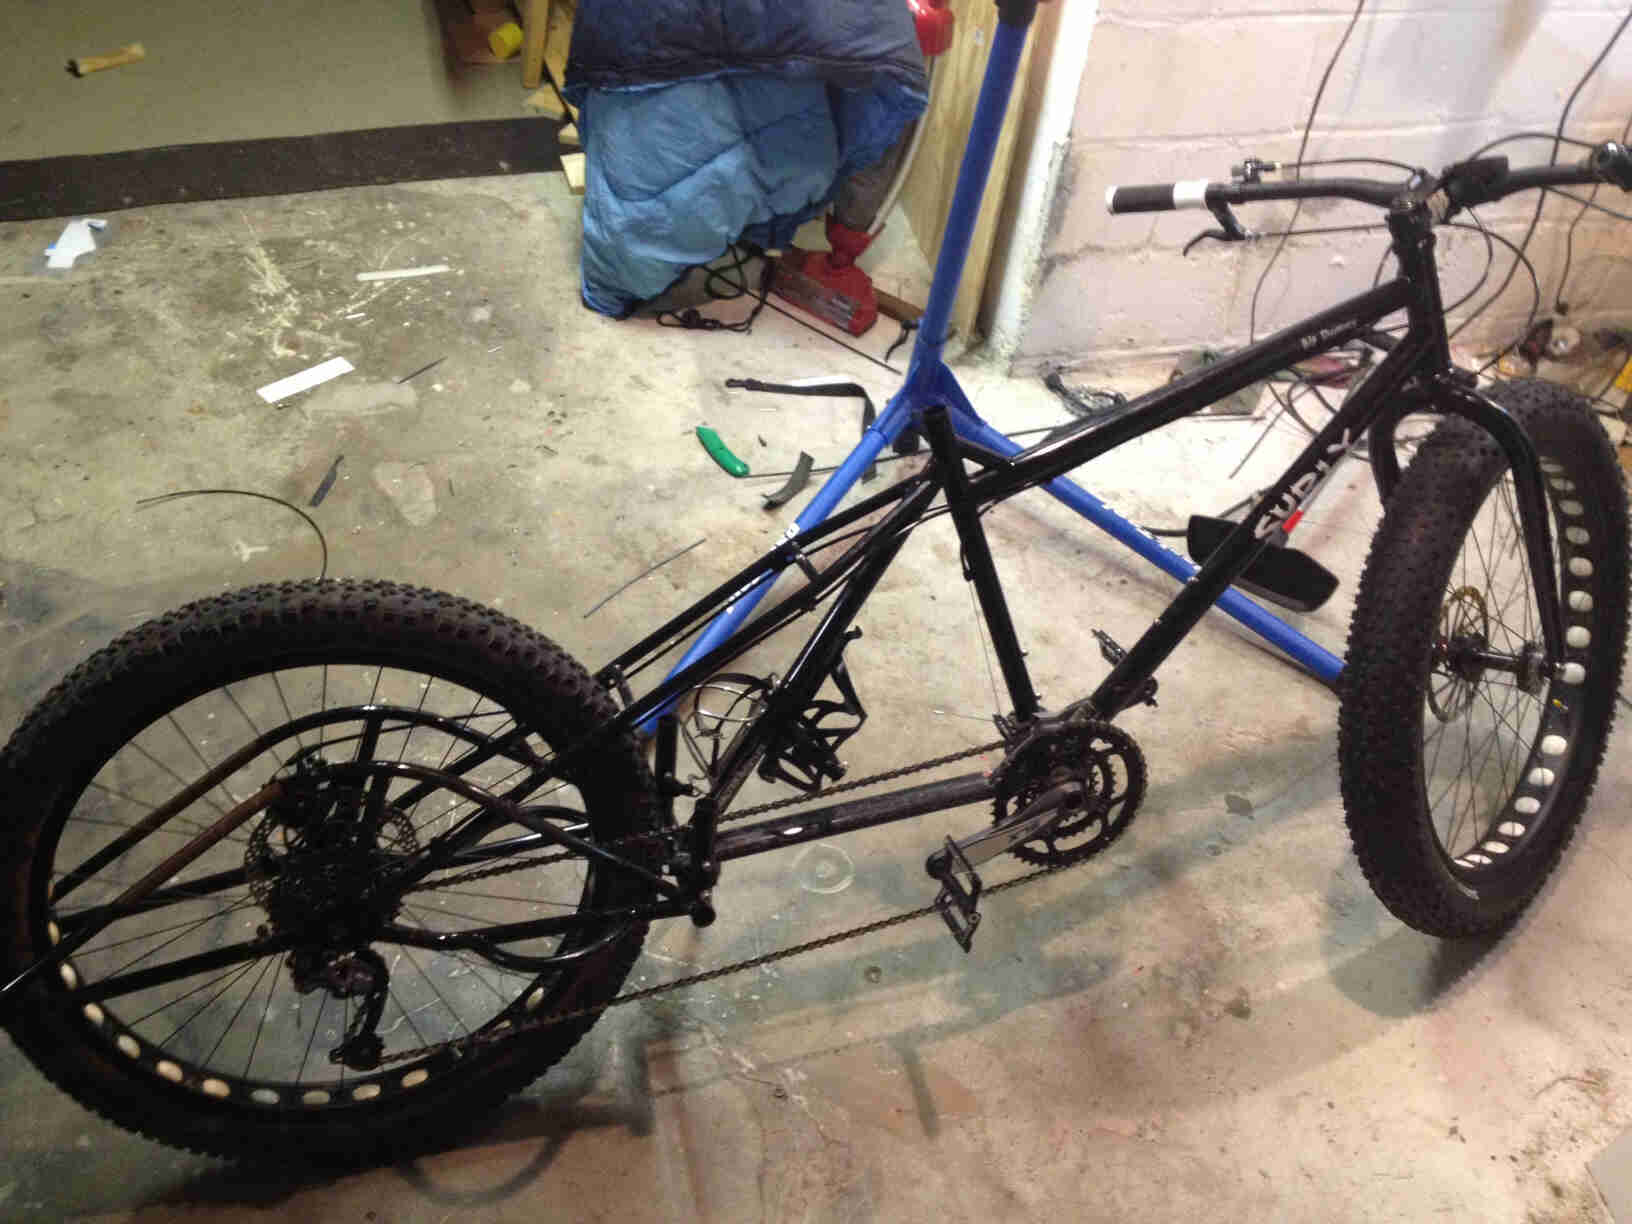 Right side view of a black Surly Big Dummy bike with a front fat wheel, without a seat or post, on a concrete floor